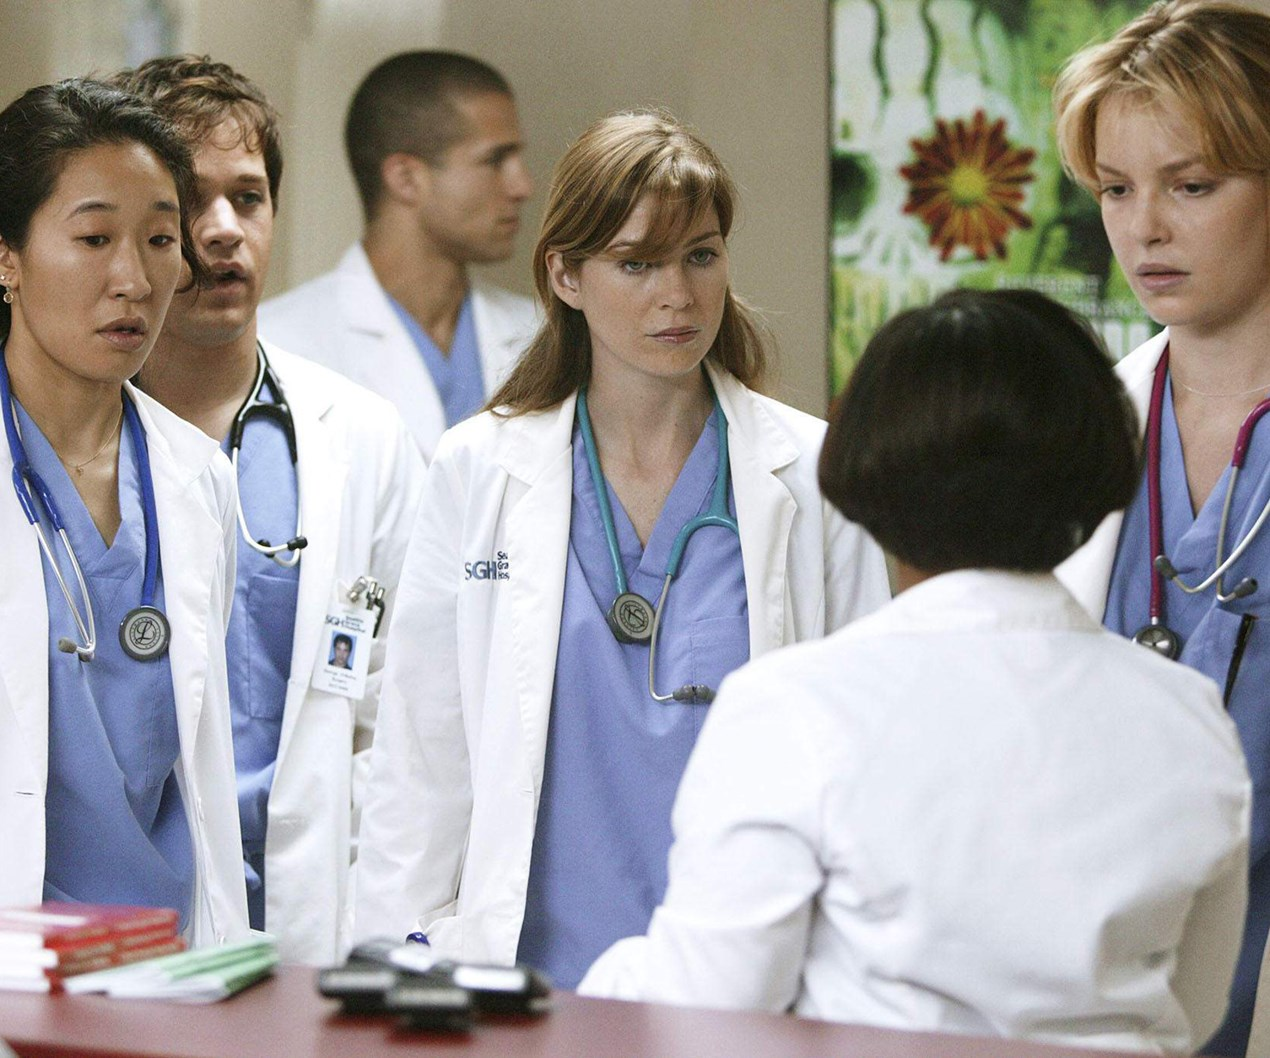 Spoiler Alert: A major character from Grey's Anatomy has died